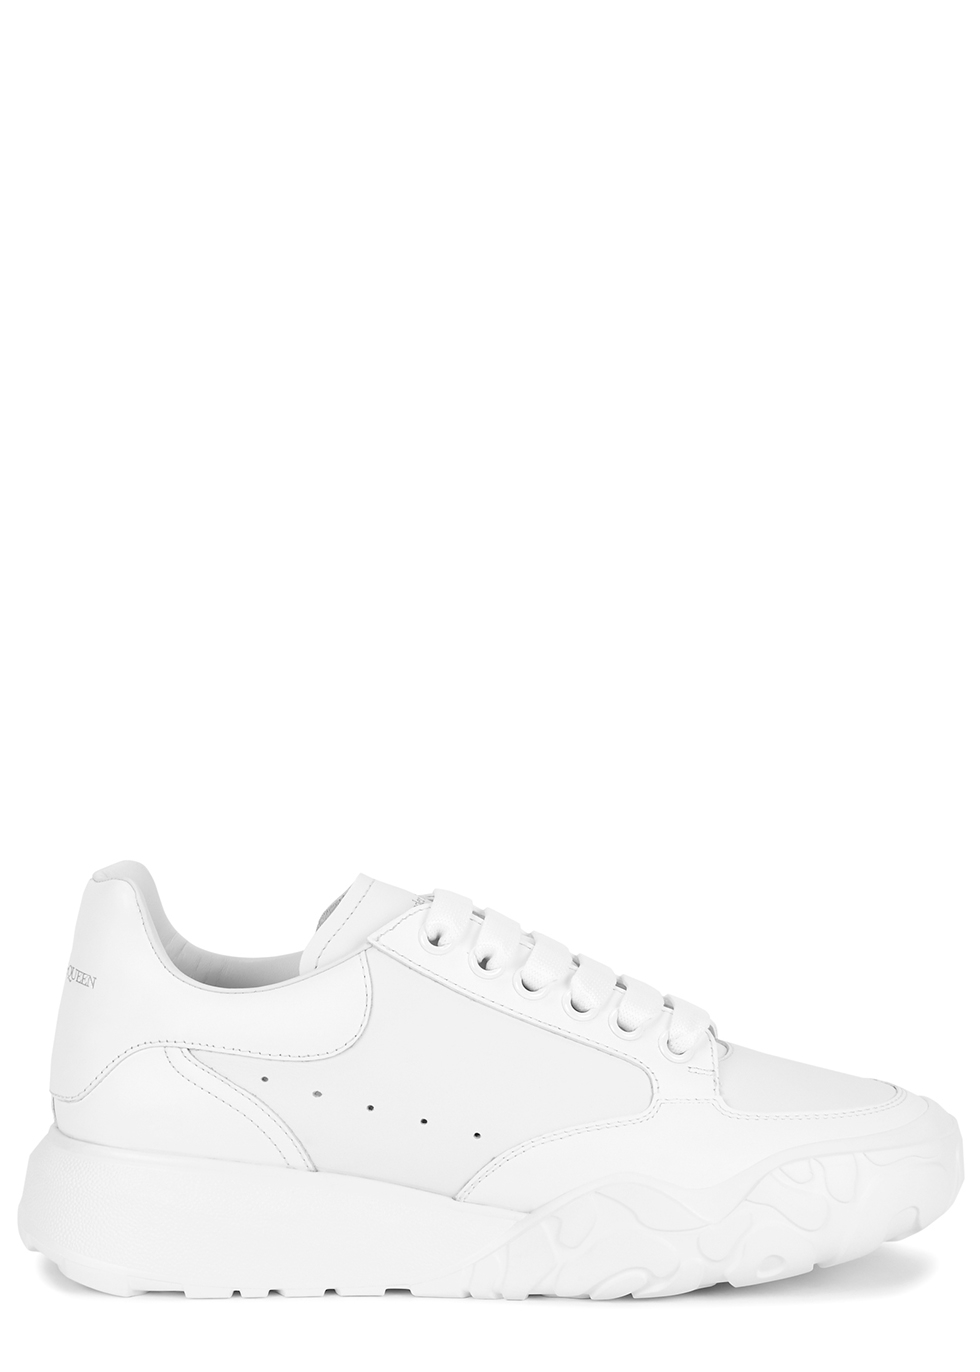 Oversized Court white leather sneakers